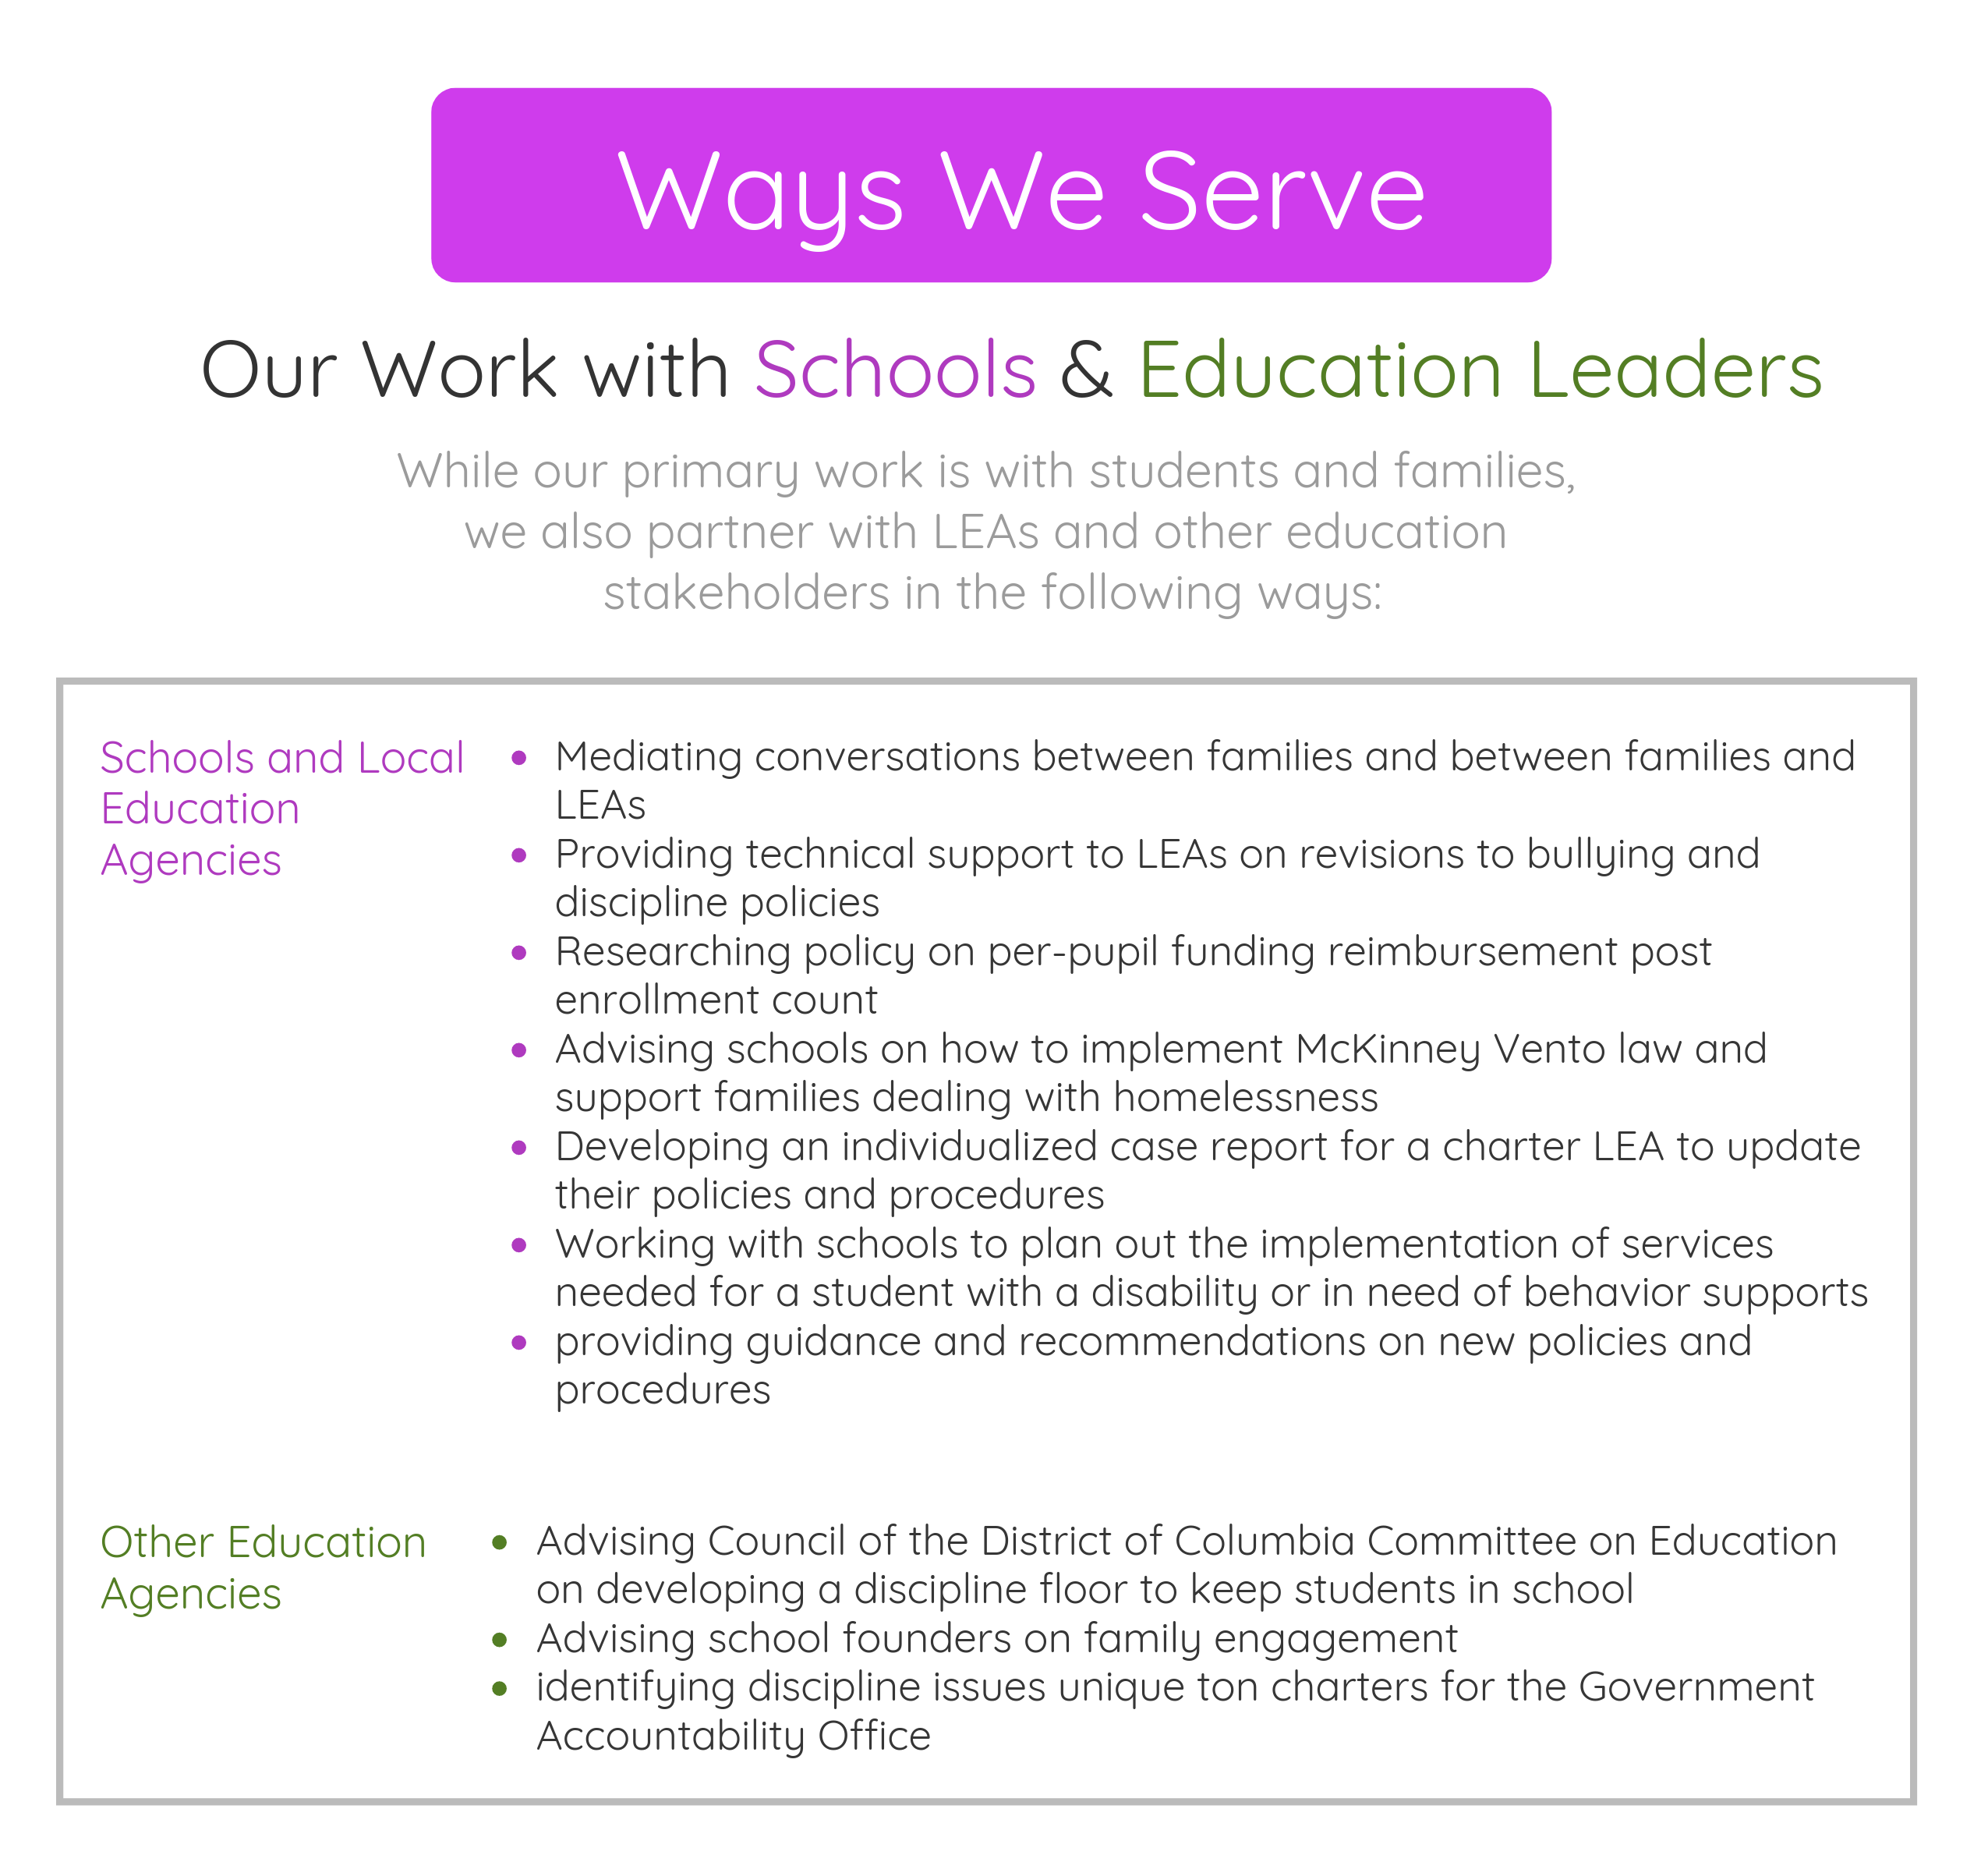 Ways We Serve: Our Work with Schools and Education Leaders. While our primary work is with students and families, we have also partnered with Local Education Agencies and other education stakeholders in the following ways: 1. Schools and Local Education Agencies. A. Mediate conversations between families and Local Education Agencies. B. Provide technical support to Local Education Agencies on revisions to bullying and discipline policies. C. Research policy on per-pupil funding reimbursement post enrollment count. D. Advise schools on how to implement McKinney Vento law and support families who are experiencing homelessness. E. Develop individualized case report for a charter Local Education Agency to update their policies and procedures. F. Work with schools to plan out the implementation of services needed for a student with a disability or in need of behavior supports. And finally, G. Provide Guidance and recommendations on new policies and procedures. 2. Other Education Entities and Stakeholders. A. Advise Council of the District of Columbia Committee on Education on developing a discipline floor to keep students in school. B. Advise school founders on implementing  effective family engagement policy and procedure. And C. Identify discipline issues unique to charters for the Government Accountability Office.